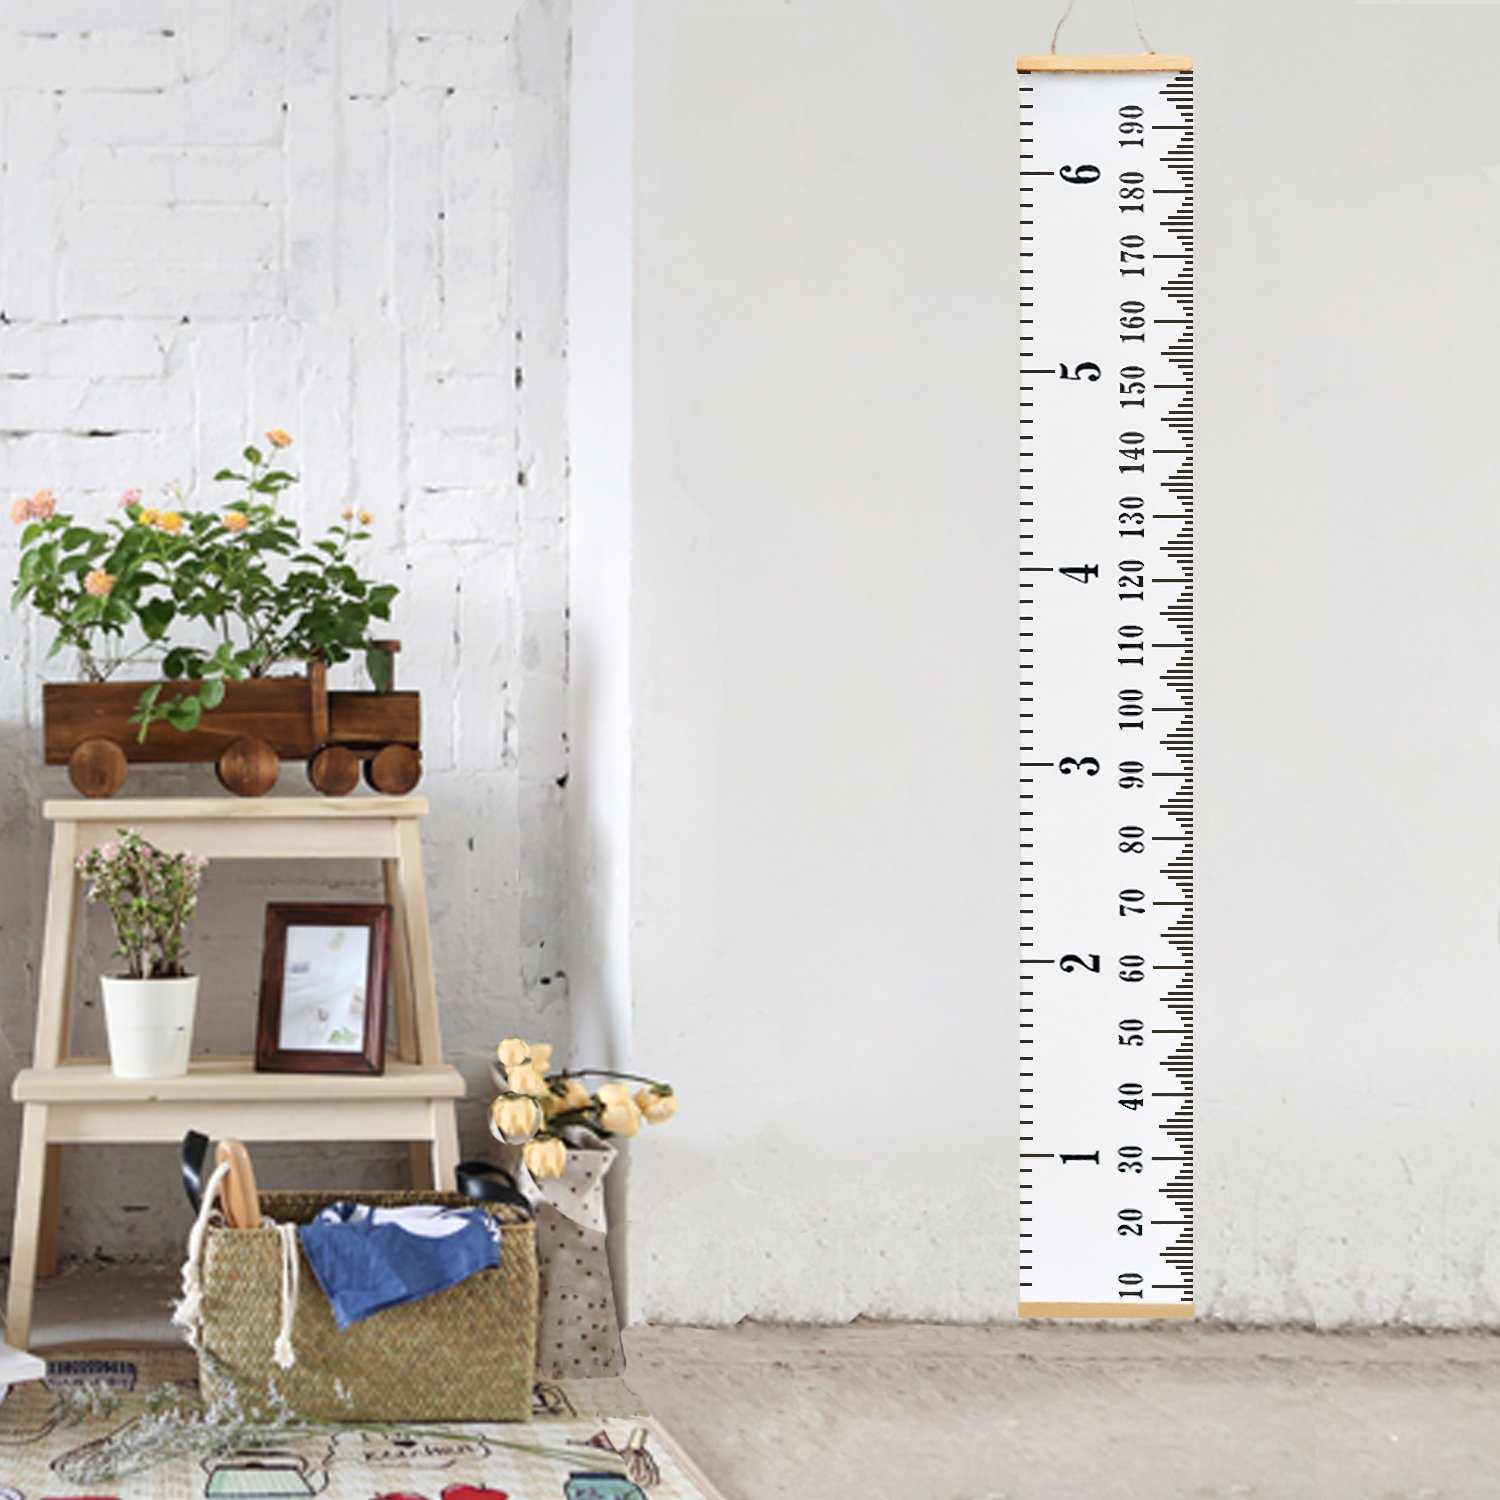 321Done Growth Chart Rocket Ship Outline Rocketship Outer Space Boys Nursery Wall Decor Kids Hanging Height Ruler Vinyl Banner Made in USA